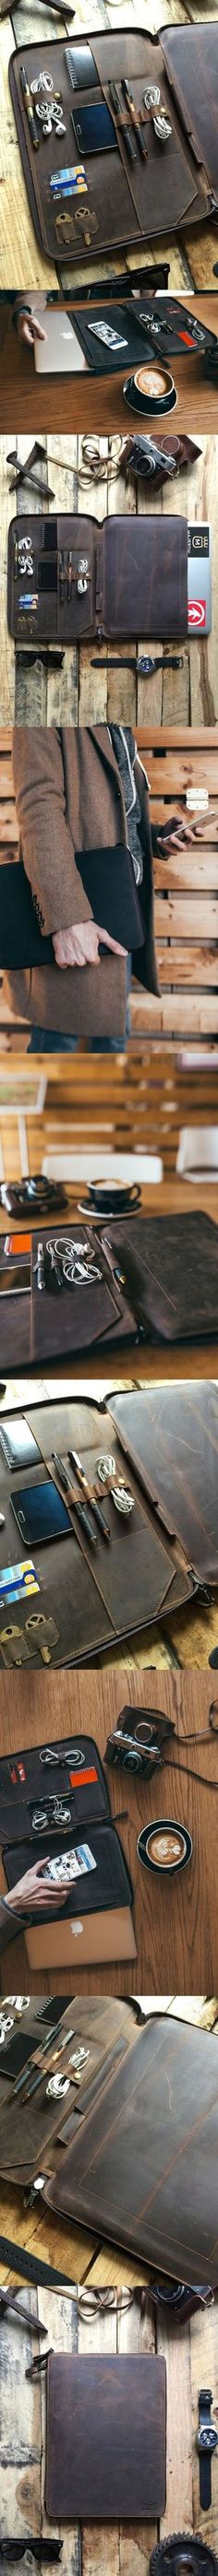 PLEASE BE AWARE THIS IS A PRE - ORDER SHIPMENT STARTS JANUARY 10 - 15TH This beautiful leather Macbook iPad Mini folio organizer is stitched using soft cowhide leathers. It is sturdy, practical and st